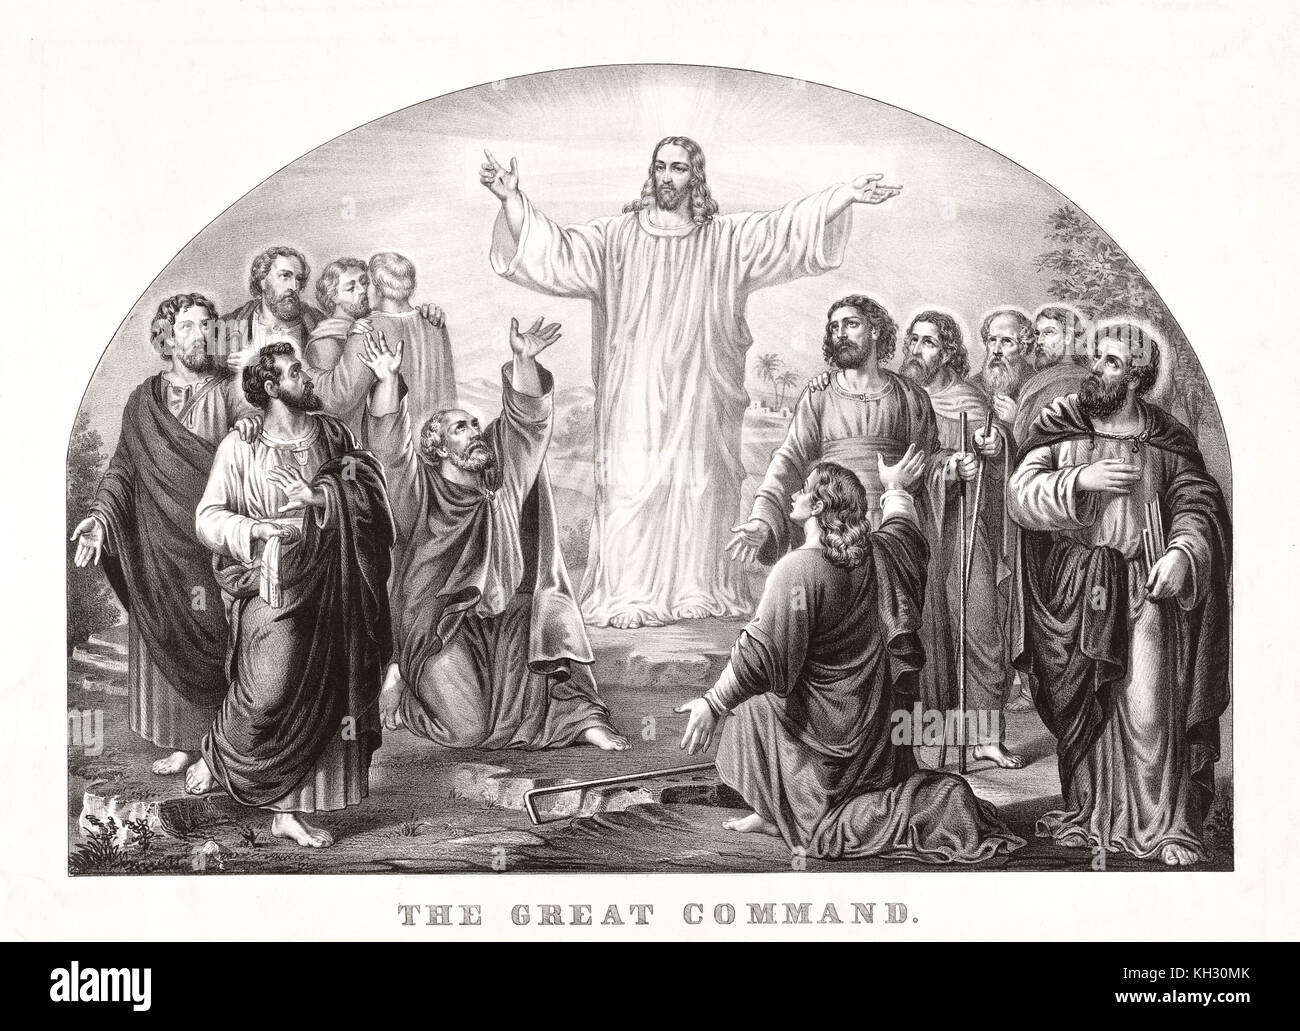 Old illustration depicting Jesus Christ preaching his Love Great Commandment to disciples. By Currier & Ives, - Stock Image